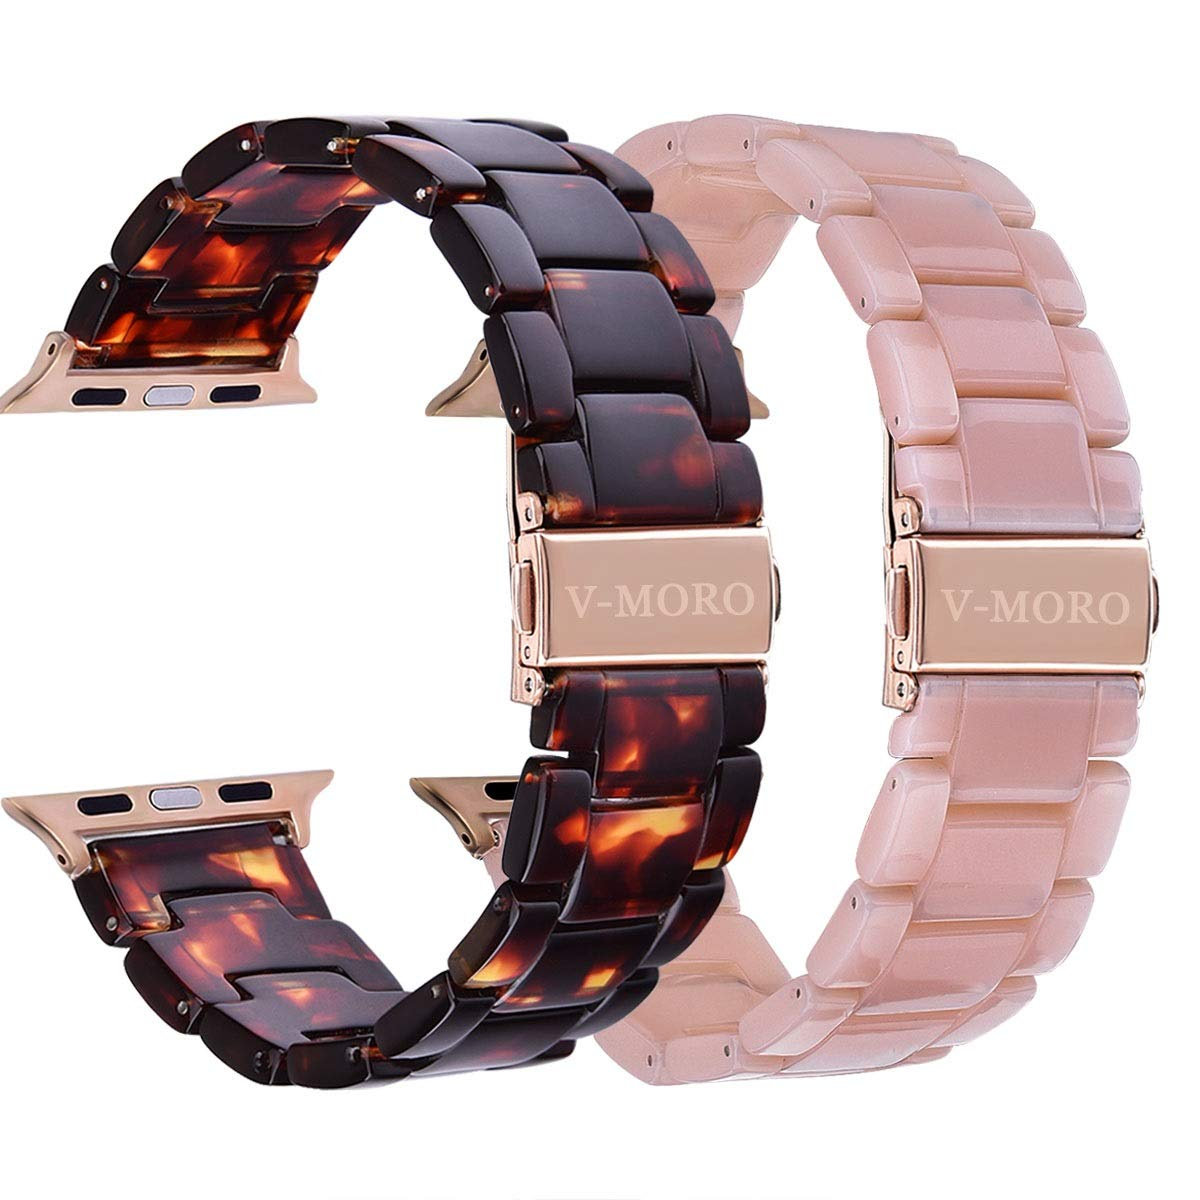 V-MORO Compatible Apple Watch Band 38mm 40mm Women Men- 2 Pack Resin iWatch Band Bracelet with Copper Stainless Steel Buckle for Apple Watch Series 4 Series 3 Series 2 Series 1 (Tortoise+Pink, 38mm)